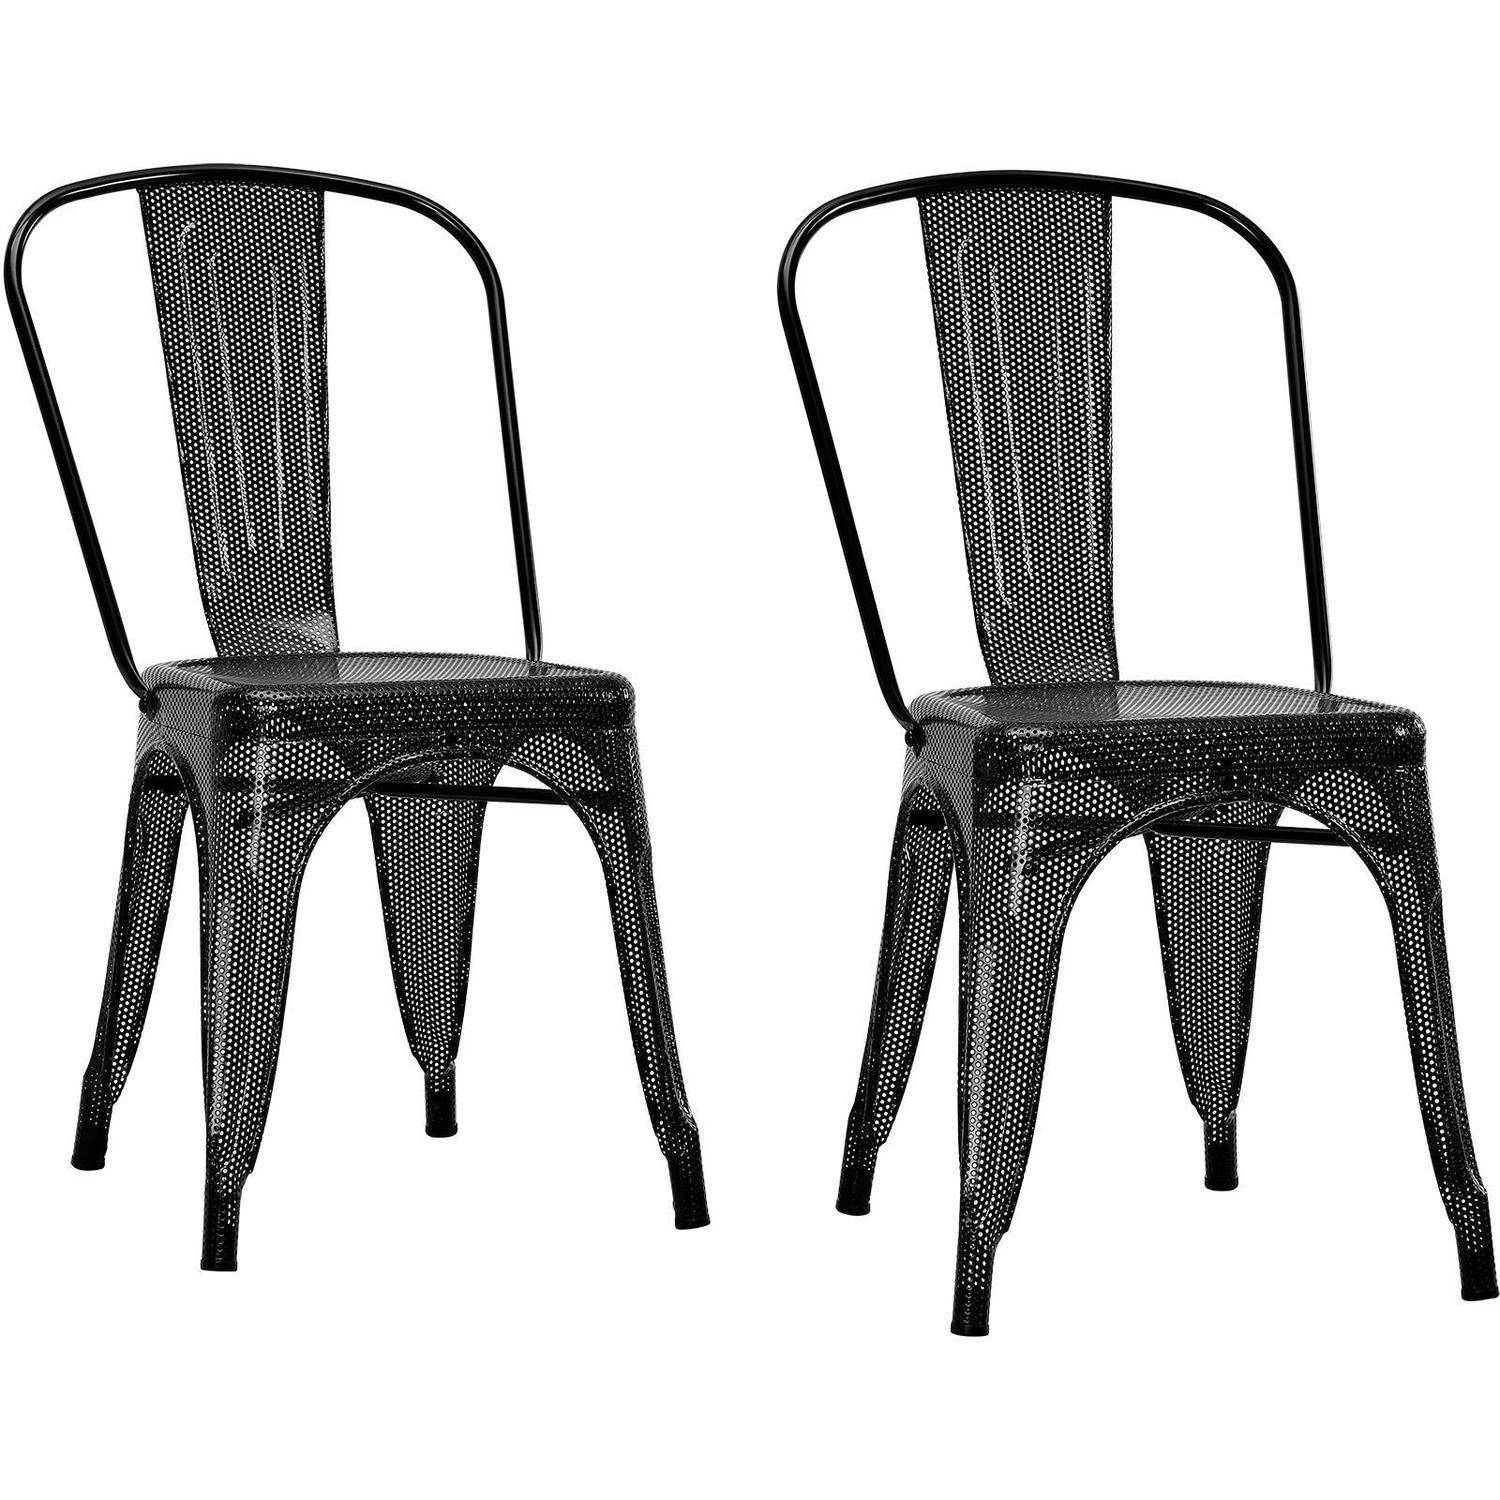 Dorel Home Products Nova Metal Mesh Dining Chair Set of 2